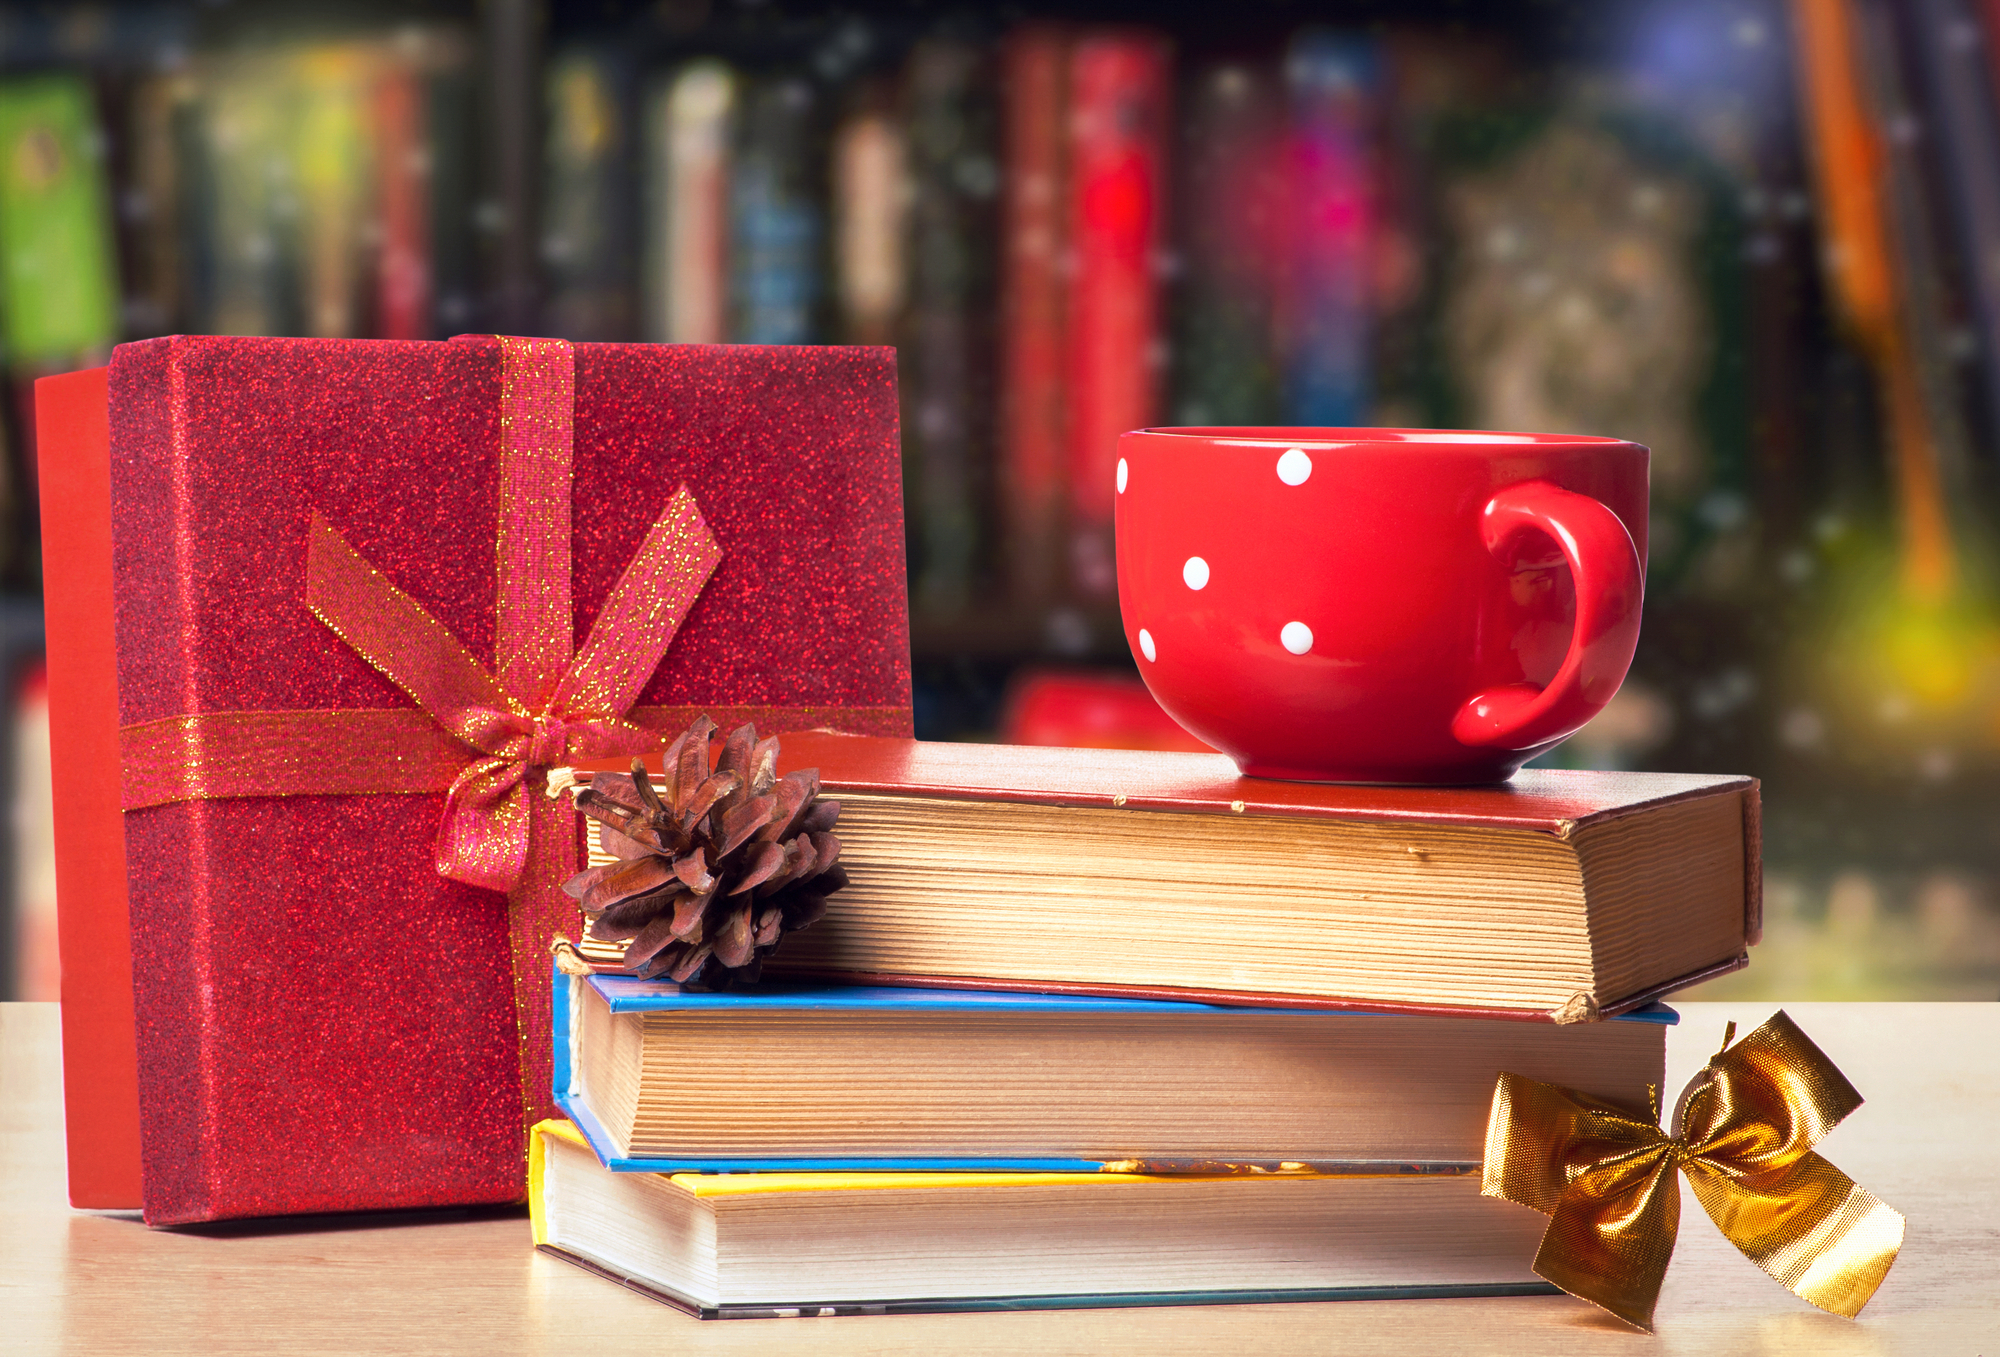 All-Time Favorite Christmas Books You'll Be Sure to Love